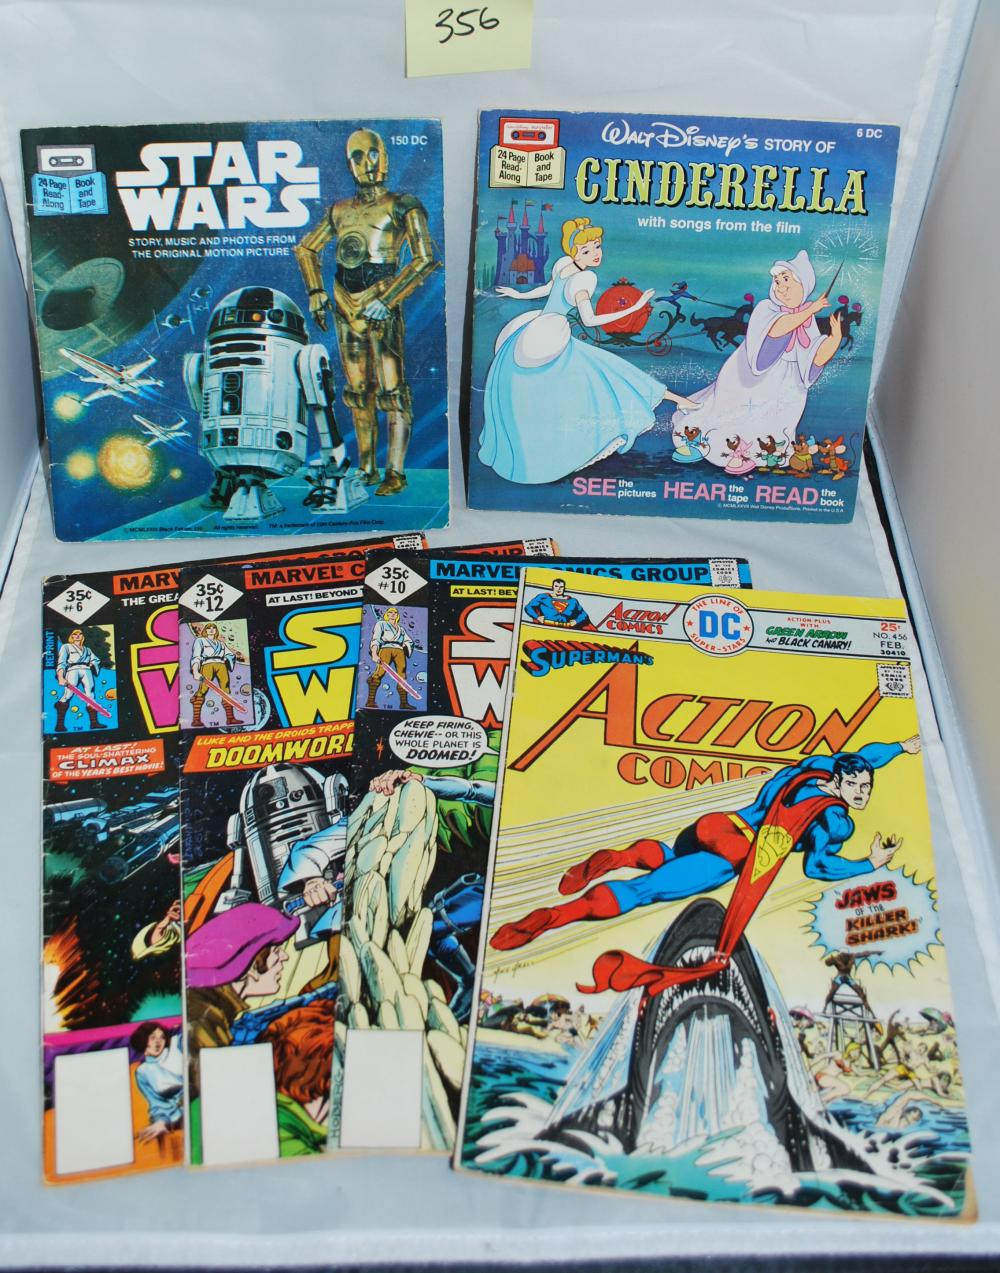 Vintage Star Wars Comic Books & Children's Books from 1970s